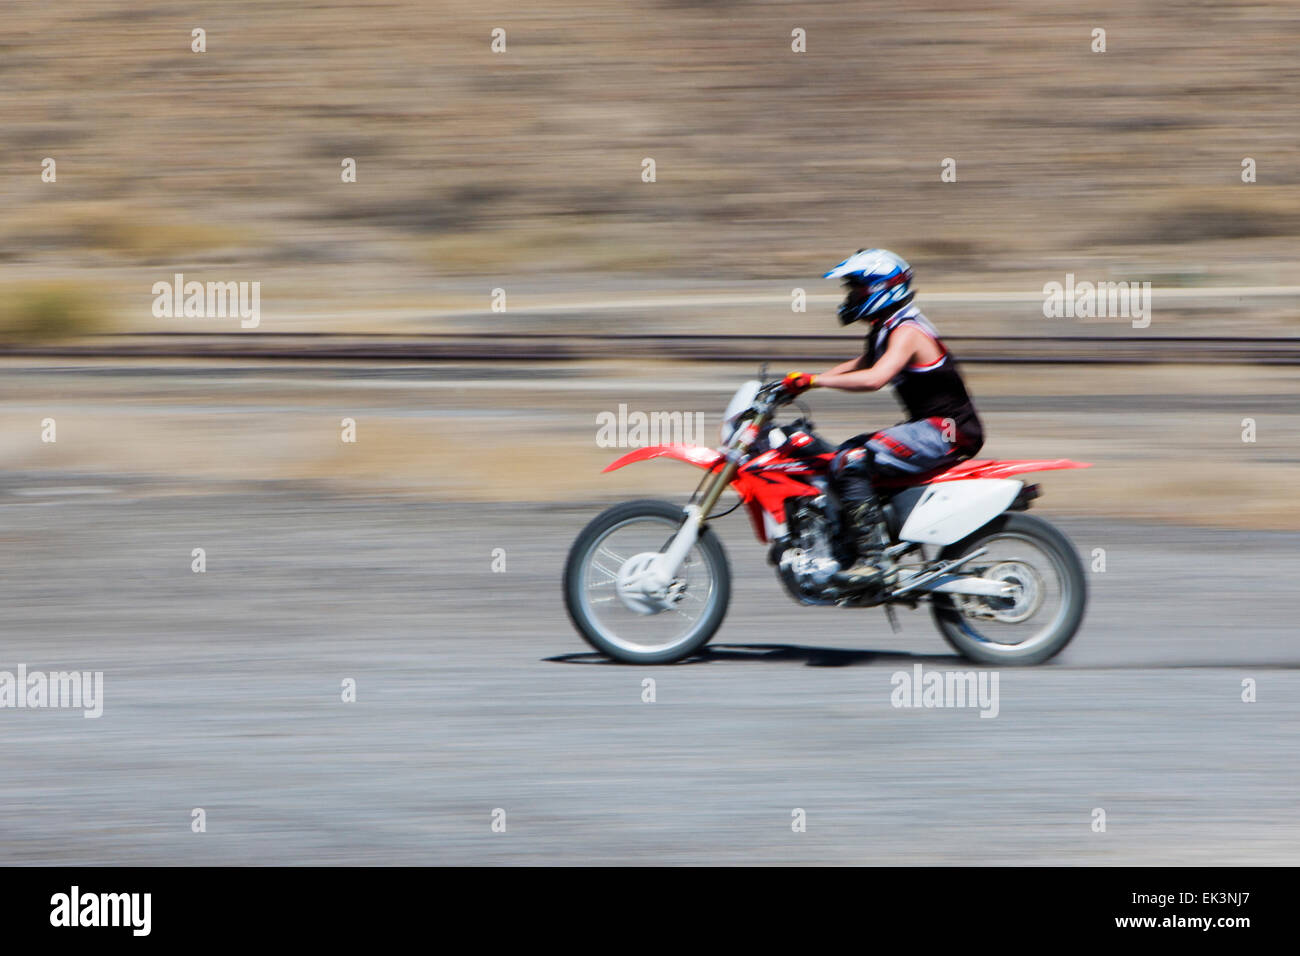 Man riding a dirt bike, motorcylce, on the barren land along Arkansas River owned by Union Pacific Railroad. - Stock Image